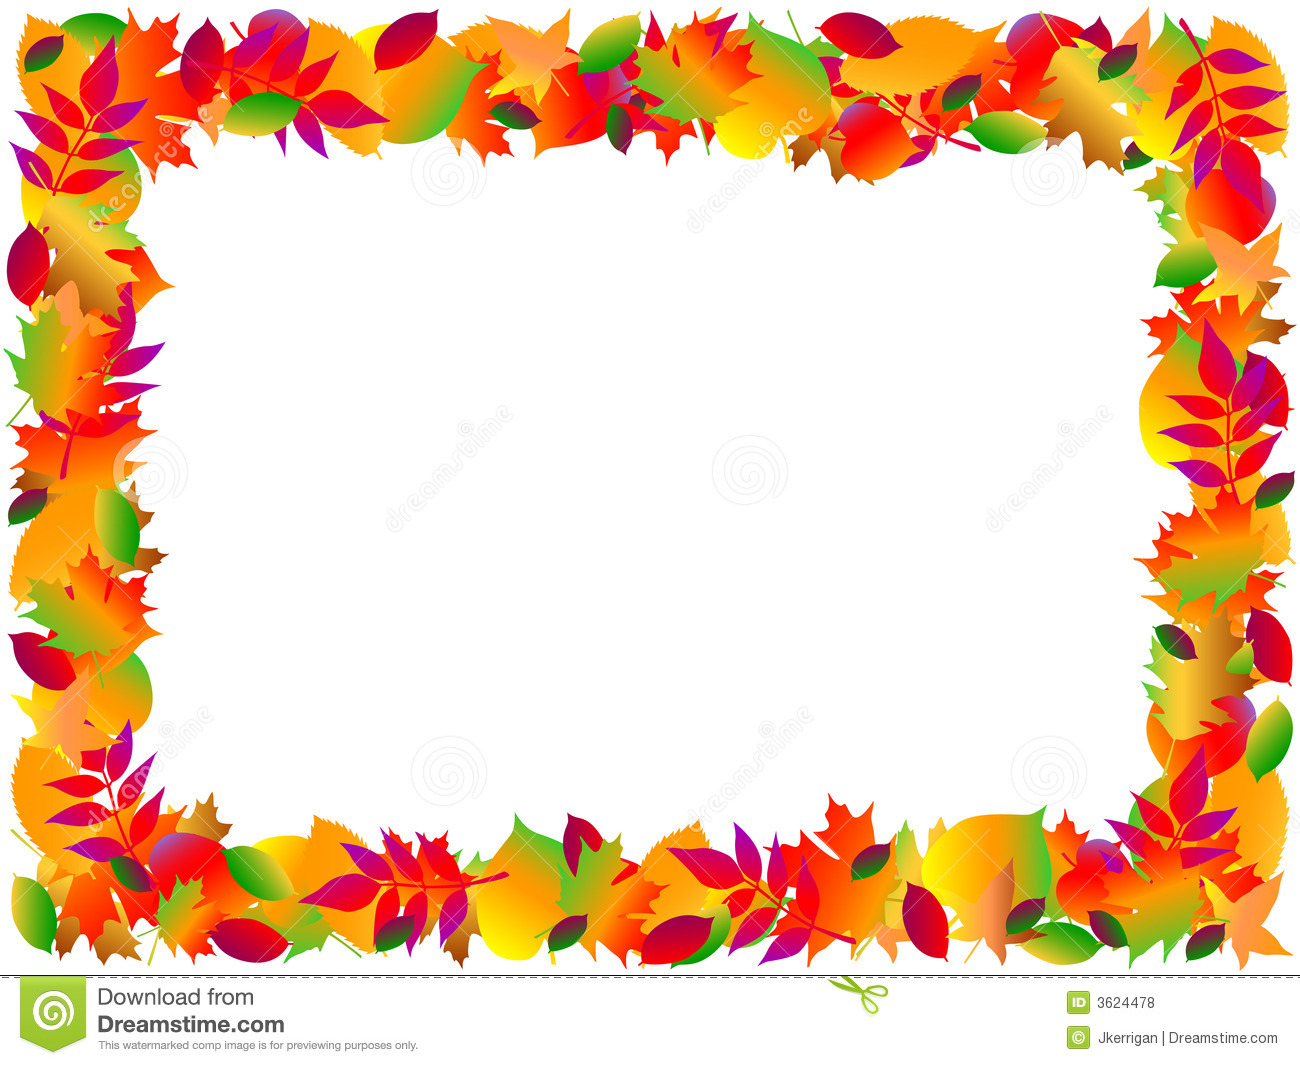 Harvest Frame Royalty Free Stock Photos - Image: 3624478